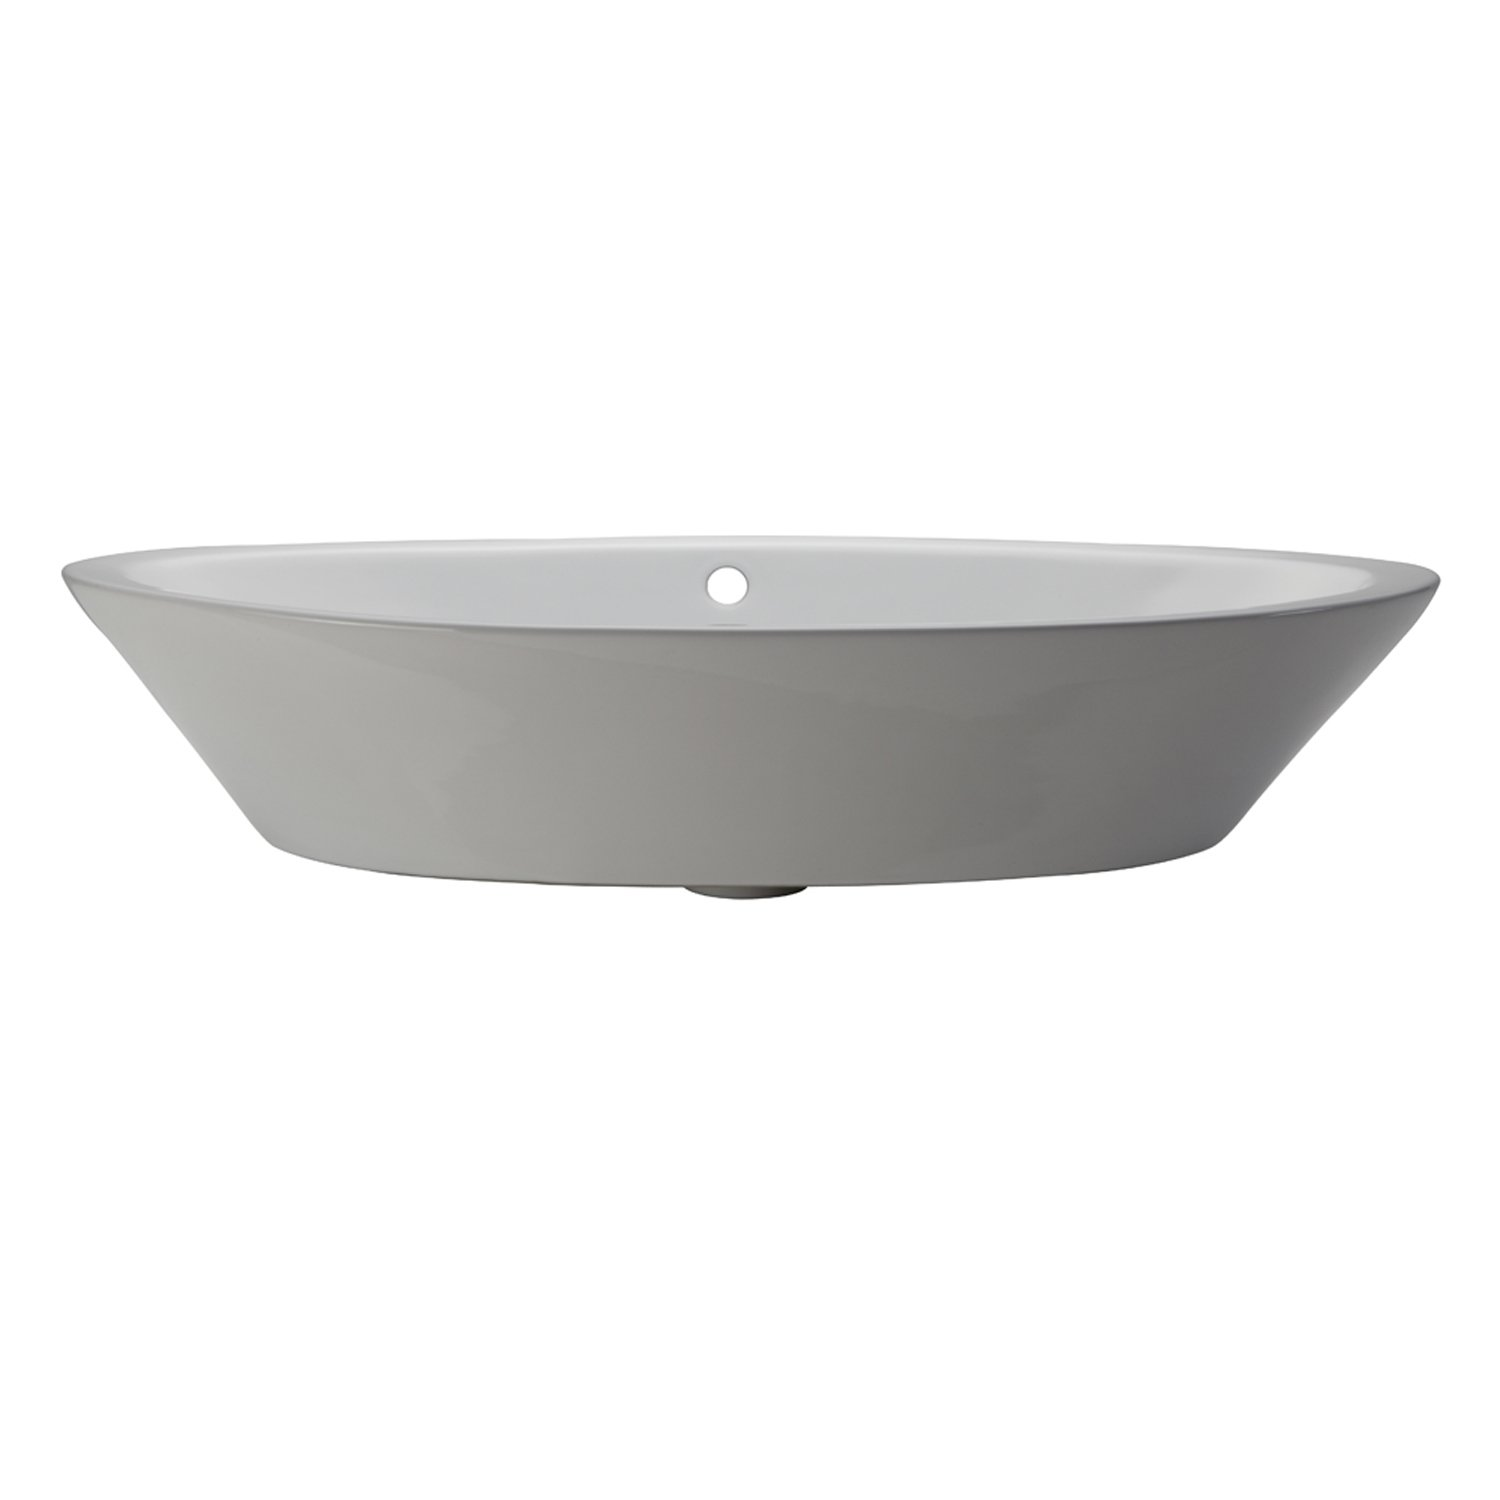 DECOLAV 1463-CWH Shaina Classically Redefined Oval Vitreous China Above-Counter Lavatory Sink, White